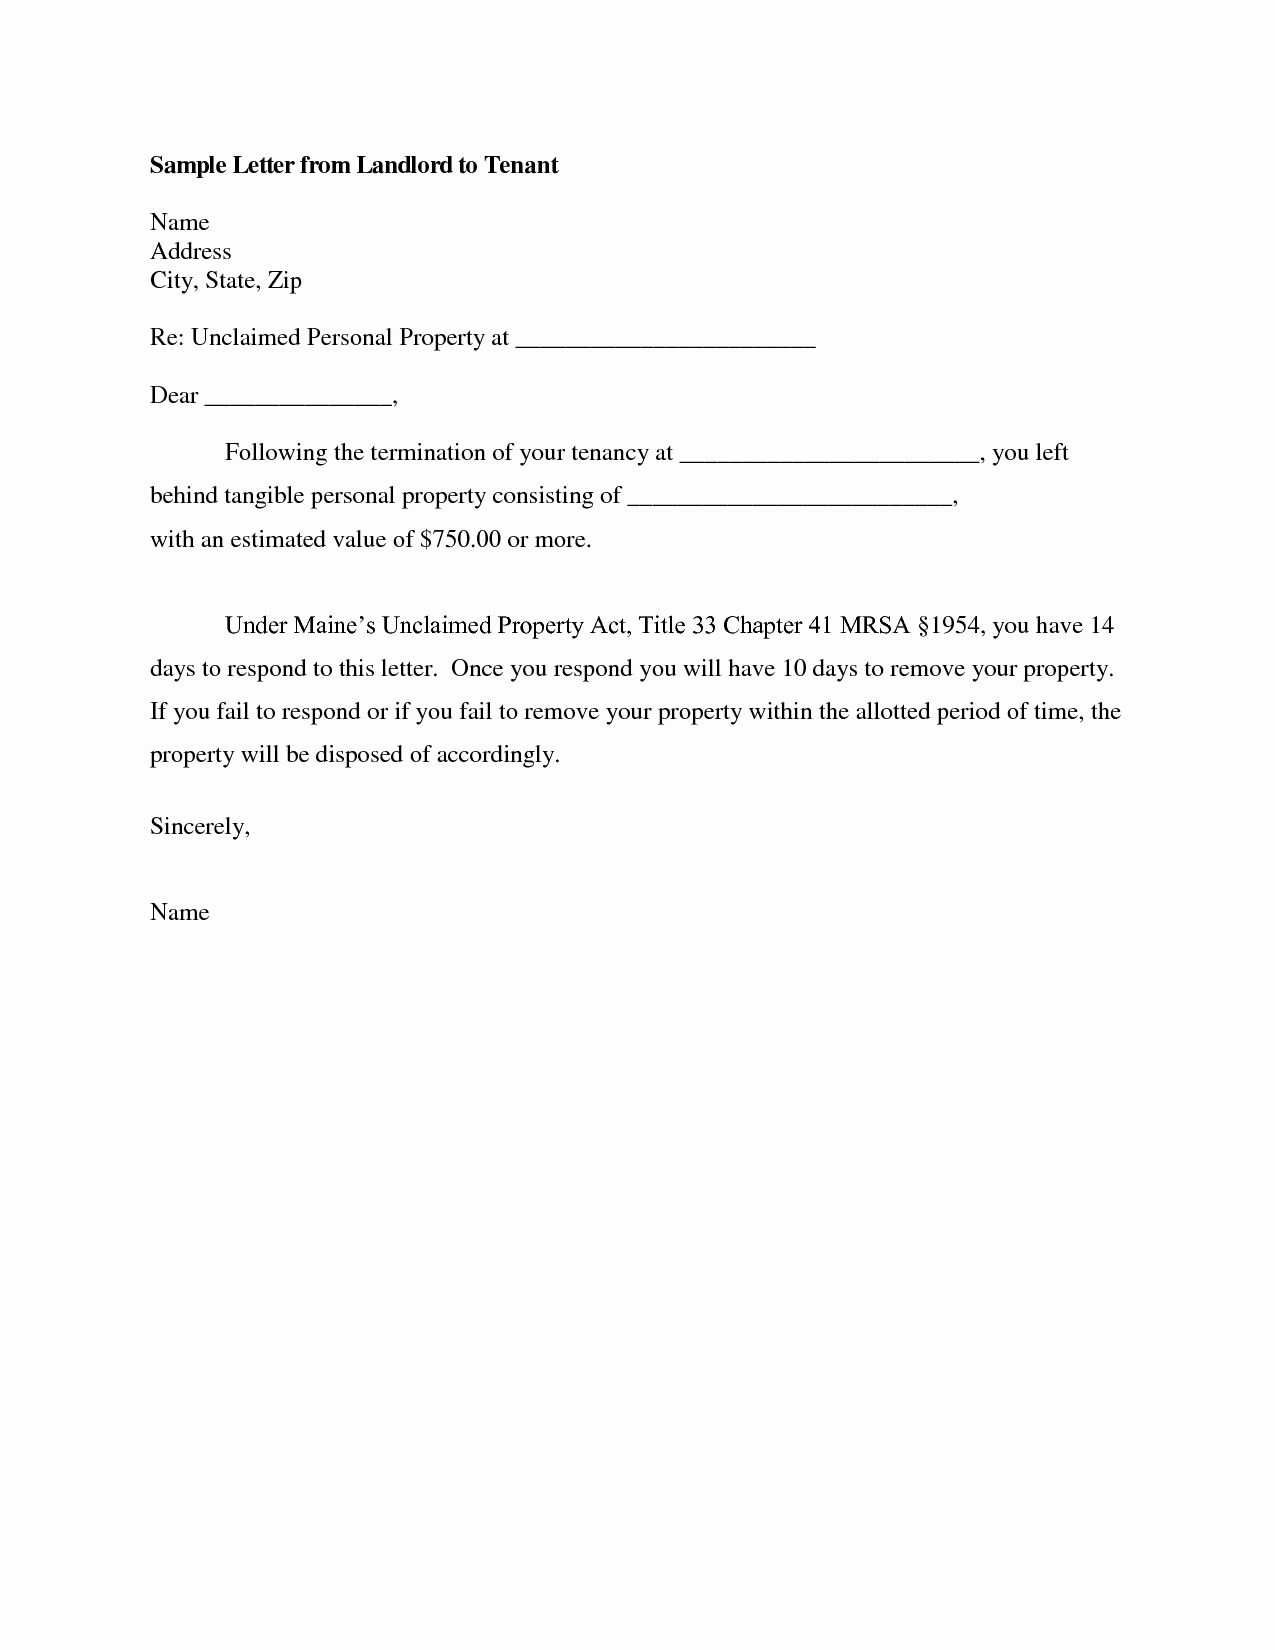 Tenant Letter to Landlord Best Of Best S Of Letters From Landlords to Tenants Sample